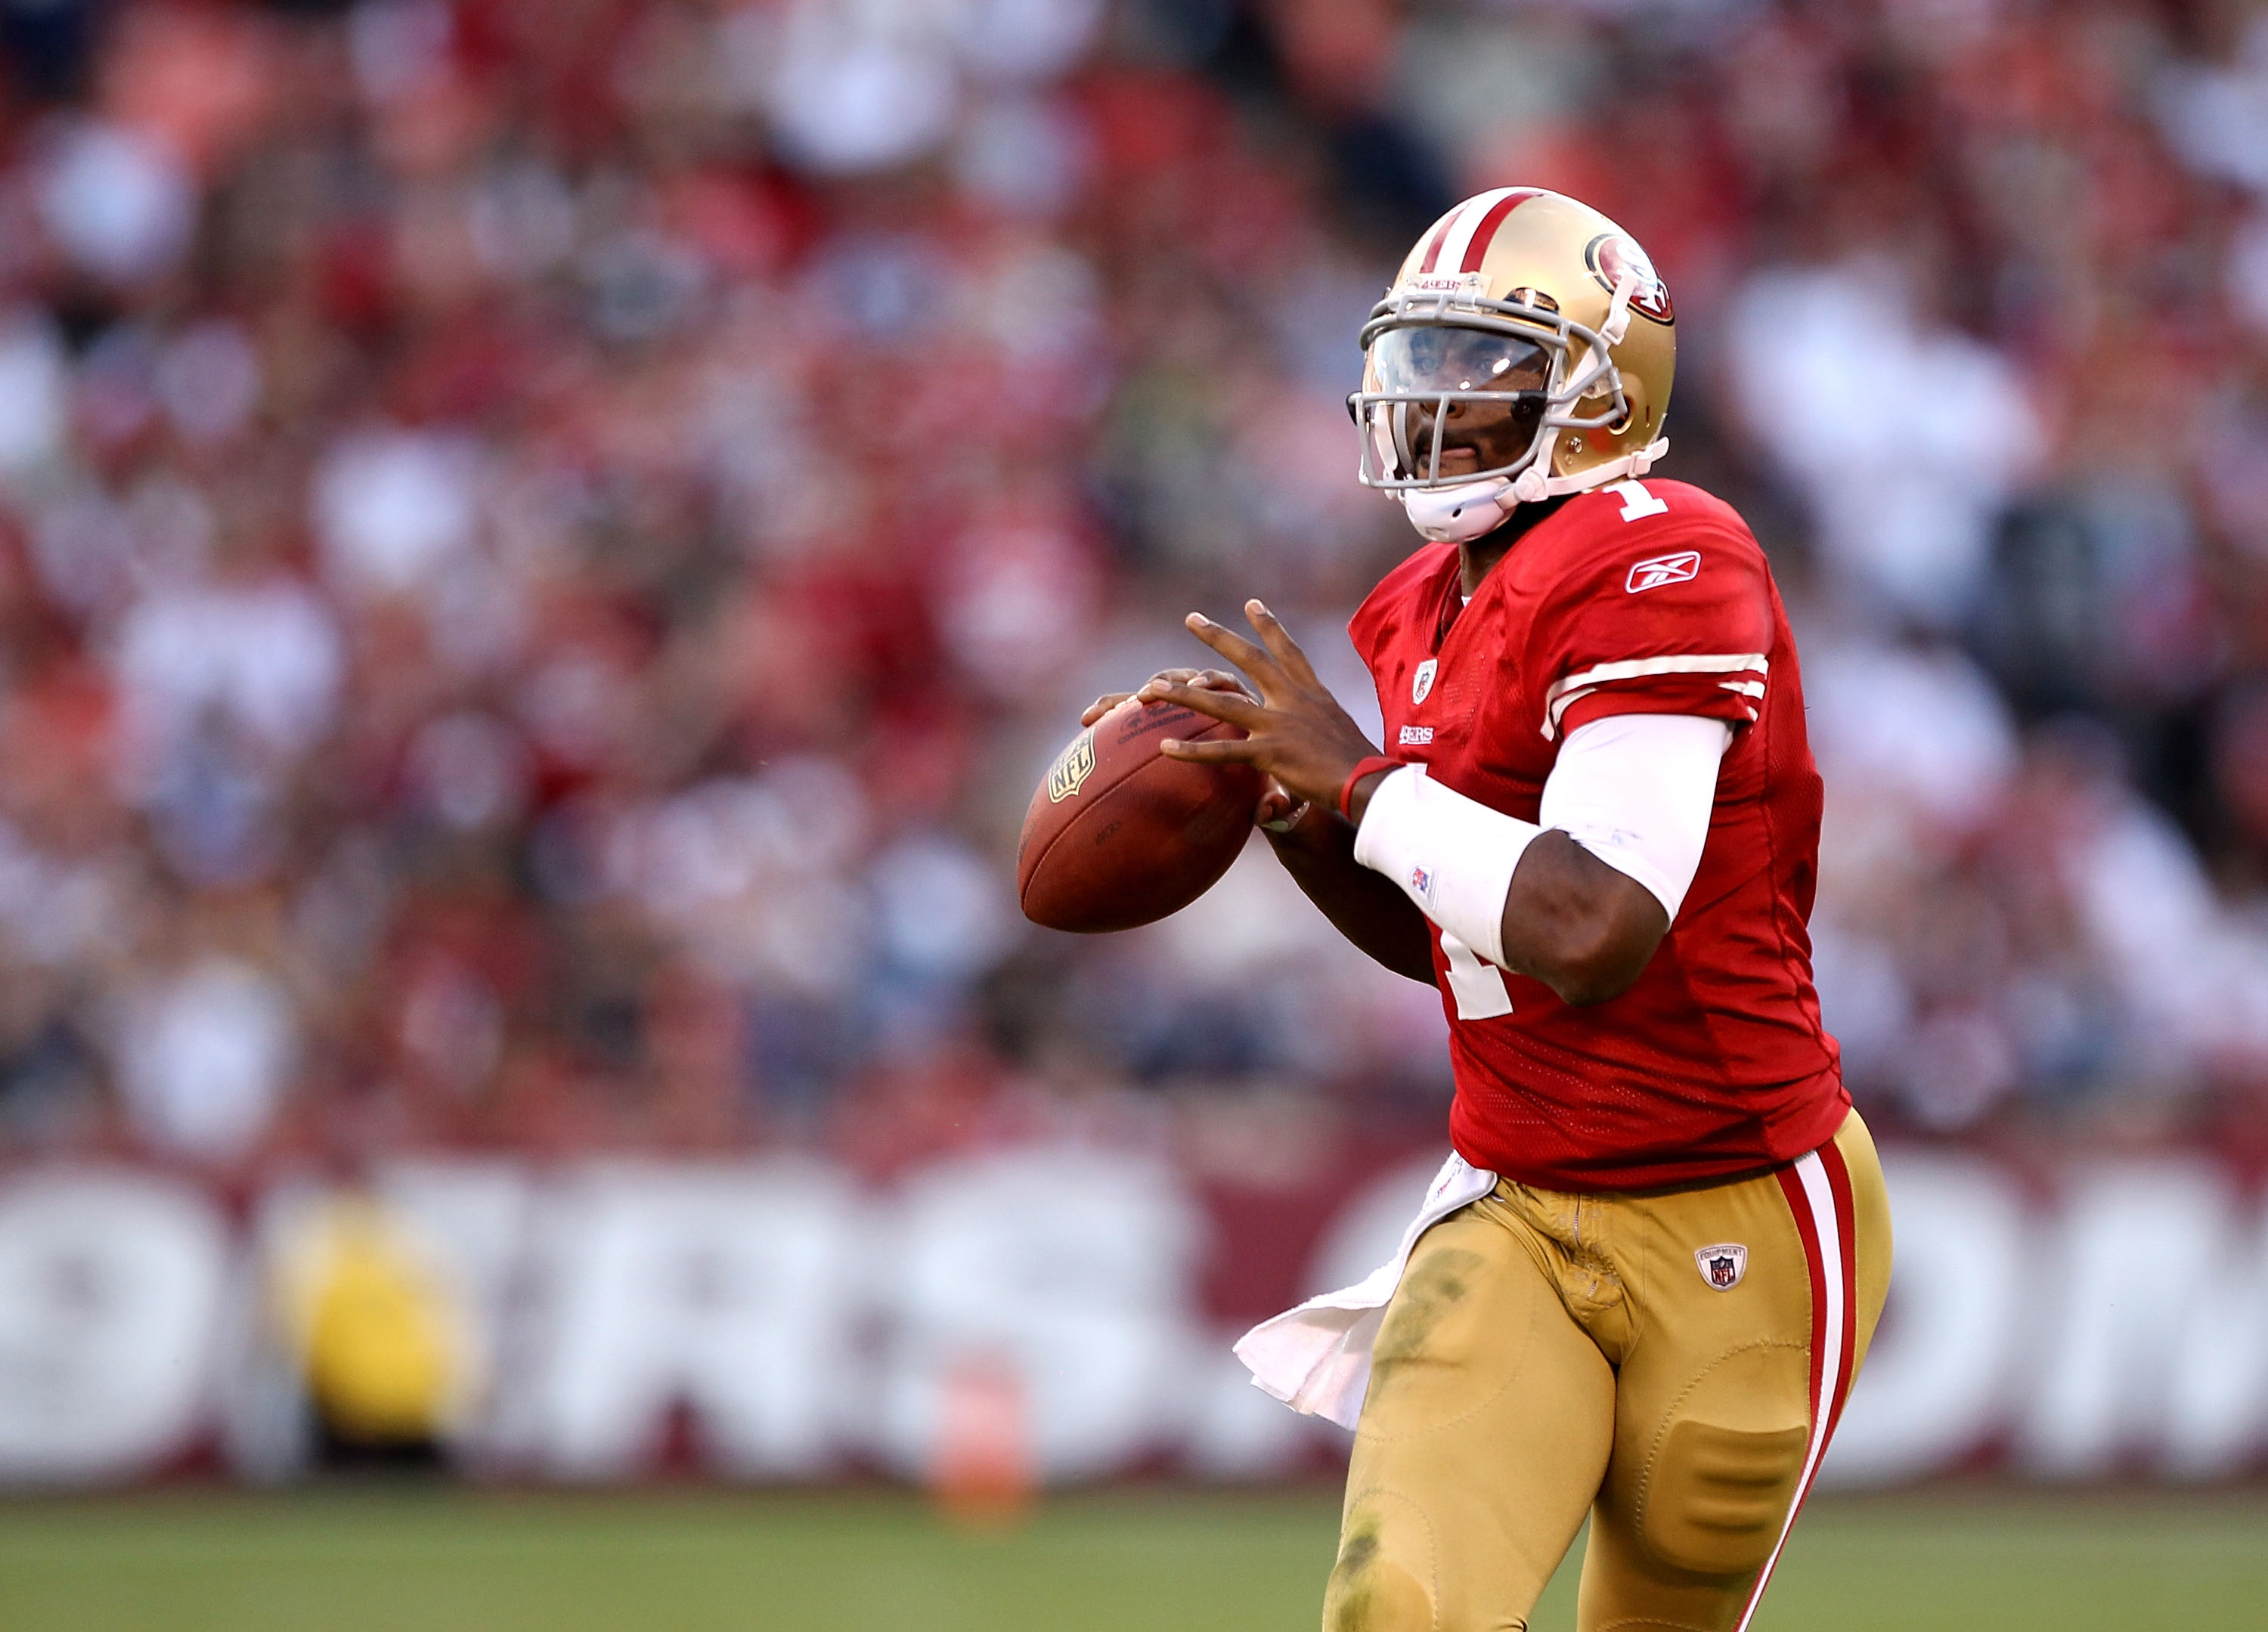 SAN FRANCISCO - NOVEMBER 14:  Troy Smith #49 of the San Francisco 49ers looks to pass the ball during their game against the St. Louis Rams at Candlestick Park on November 14, 2010 in San Francisco, California.  (Photo by Ezra Shaw/Getty Images)